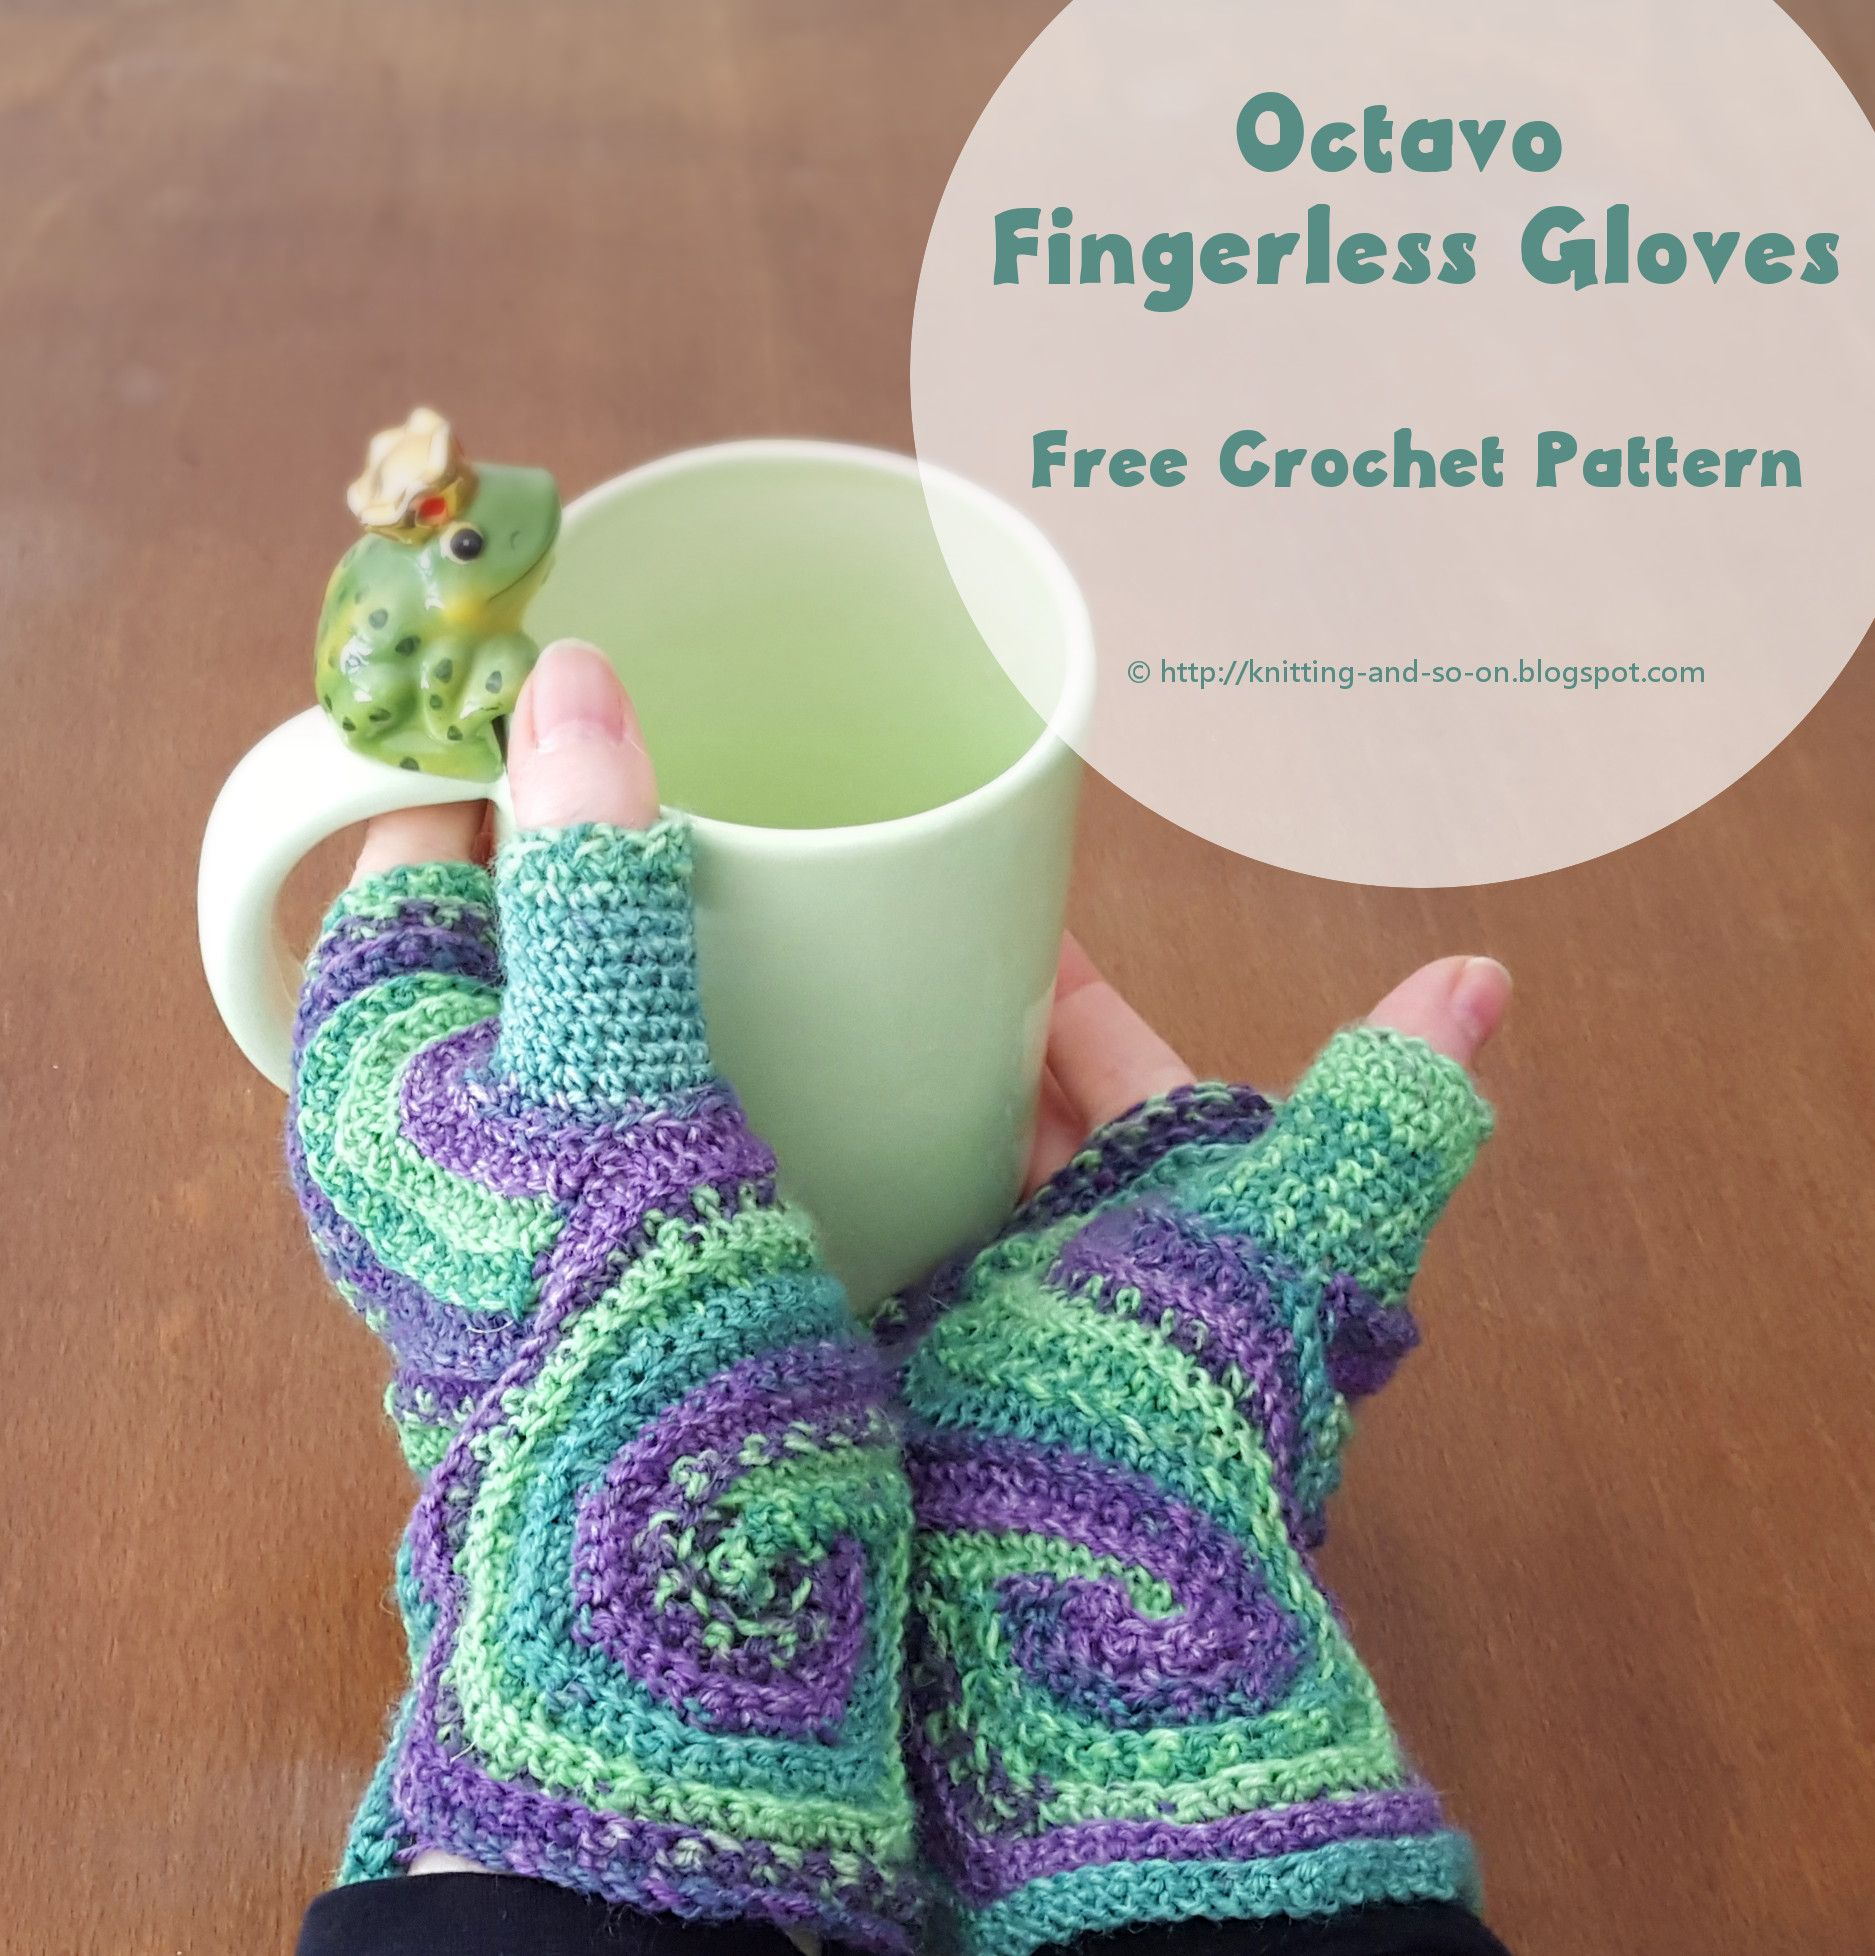 Octavo Fingerless Glove - Free crochet pattern. Converted from a ...